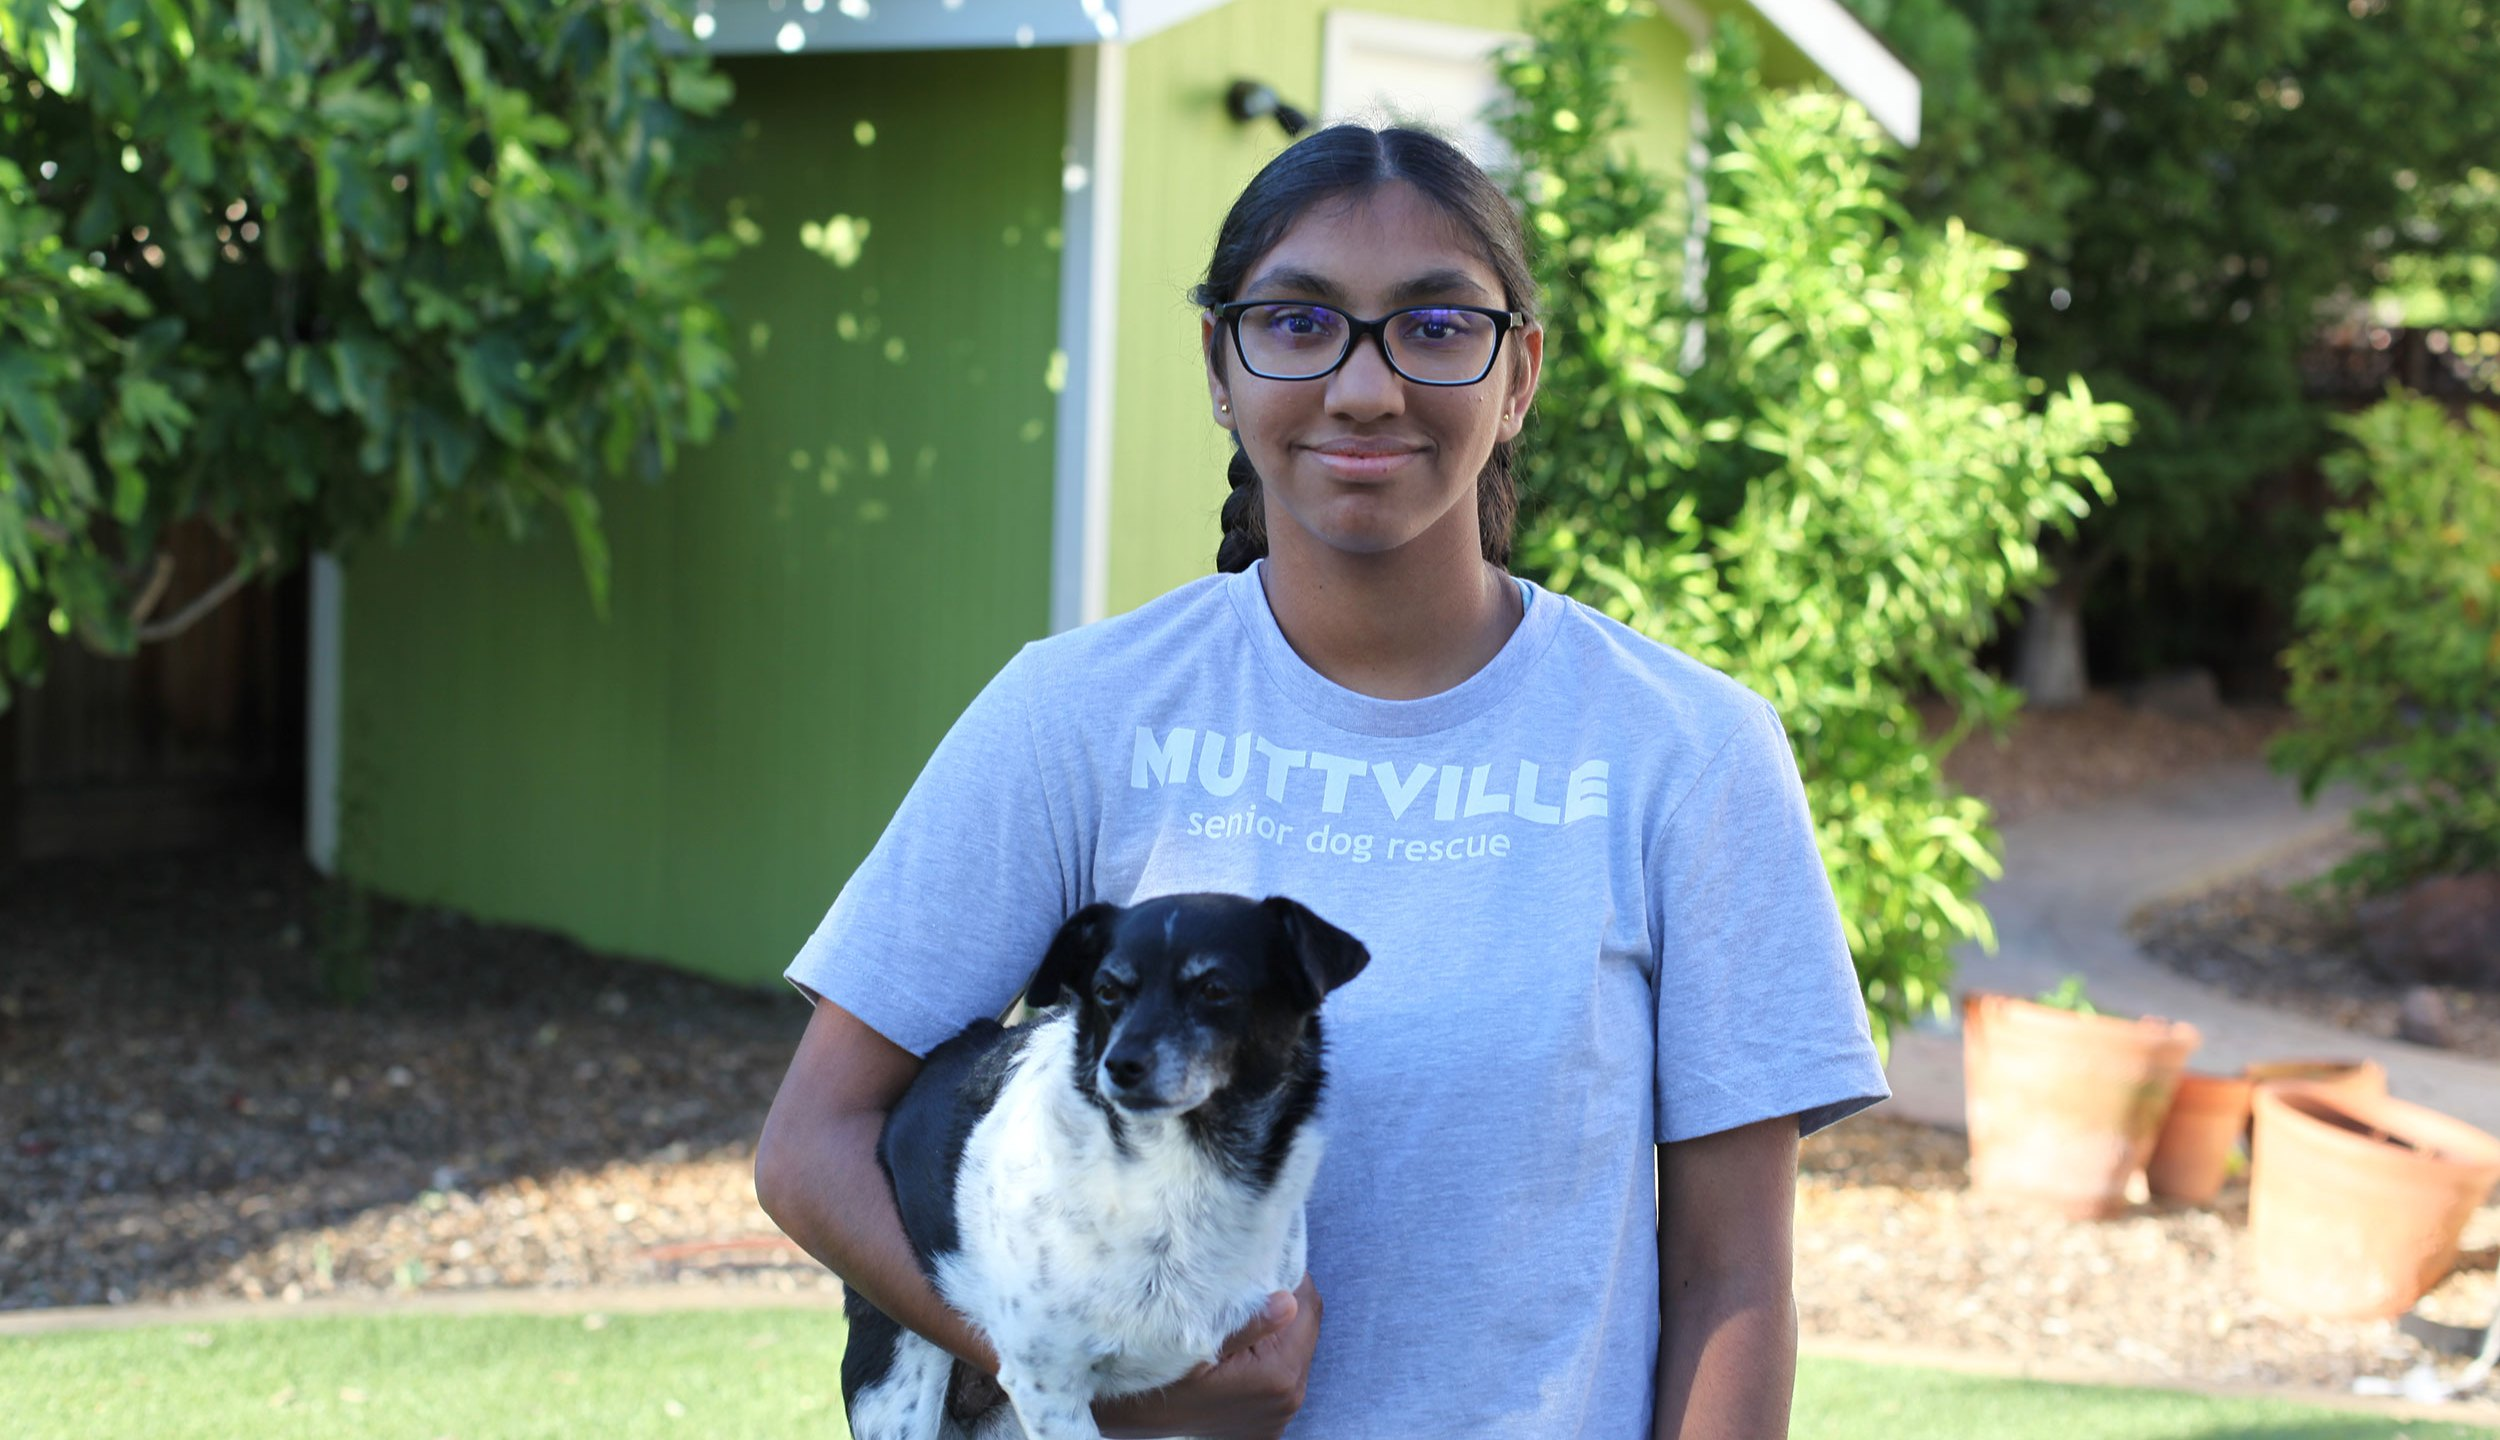 Meena Kumar, 14, helps abandoned senior dogs get a second chance. (Jayashree Subrahmonia via CNN)